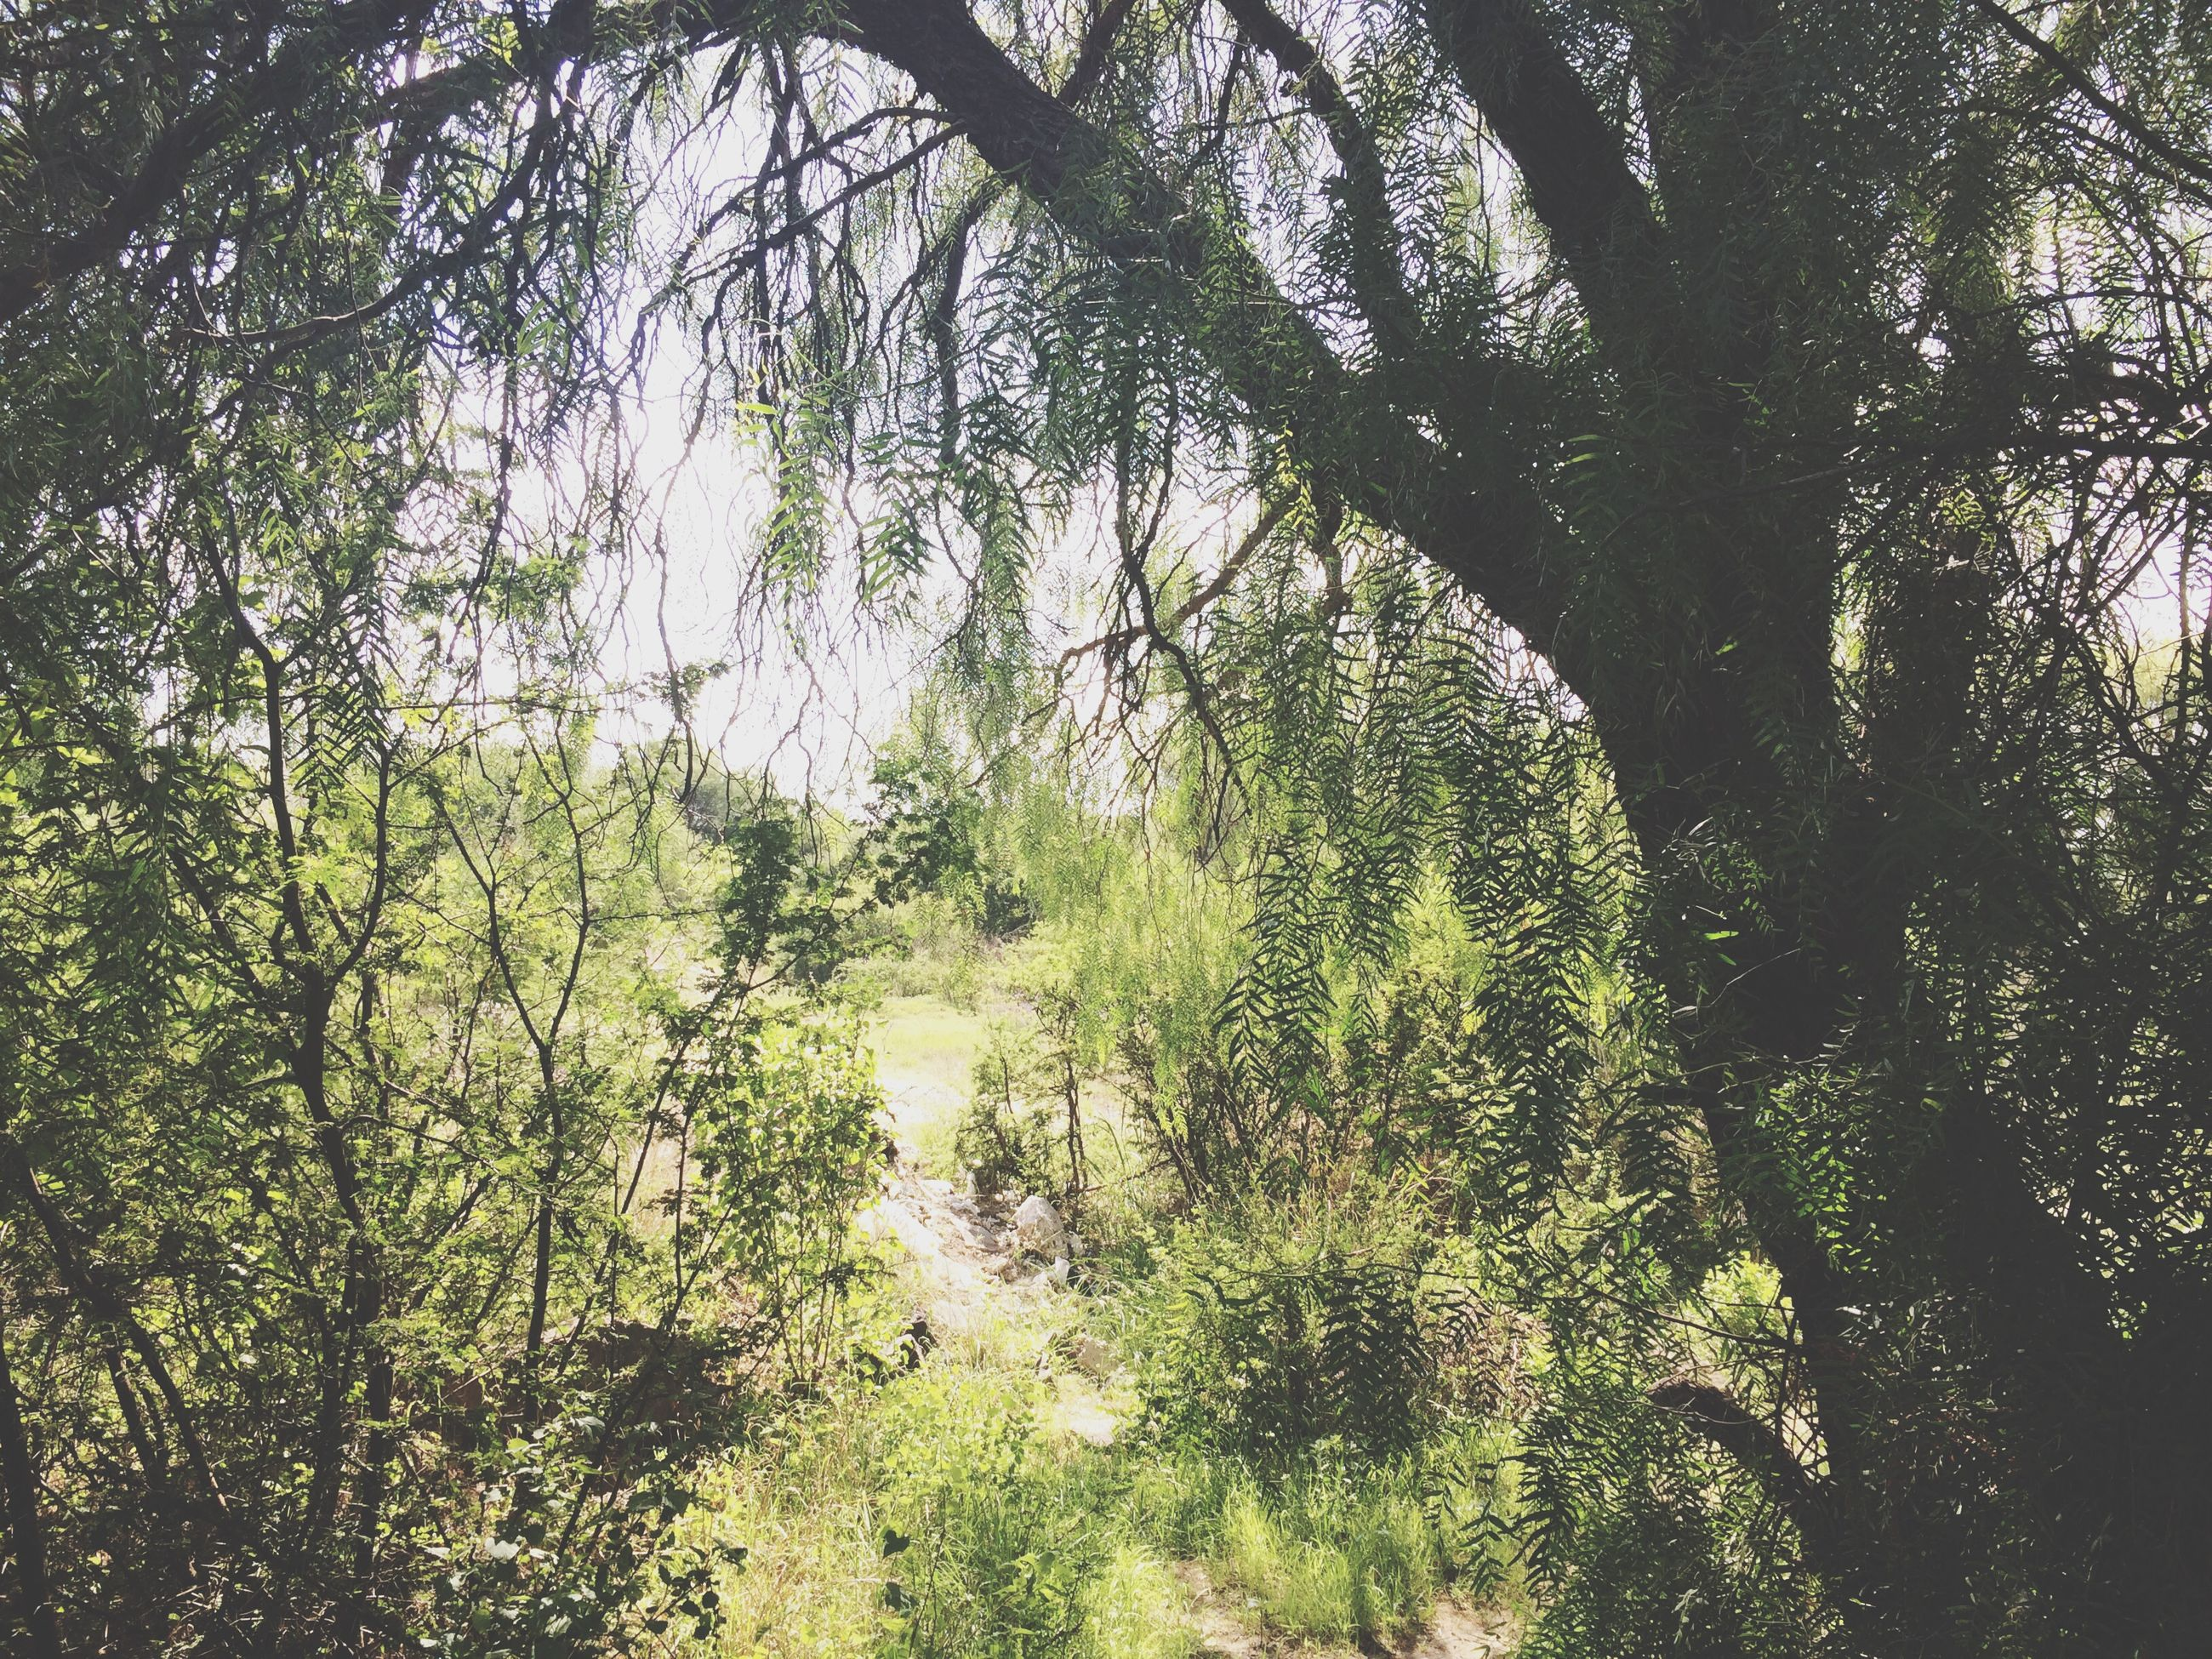 tree, growth, branch, low angle view, tranquility, nature, green color, beauty in nature, leaf, forest, tree trunk, day, sunlight, outdoors, tranquil scene, no people, plant, growing, lush foliage, scenics